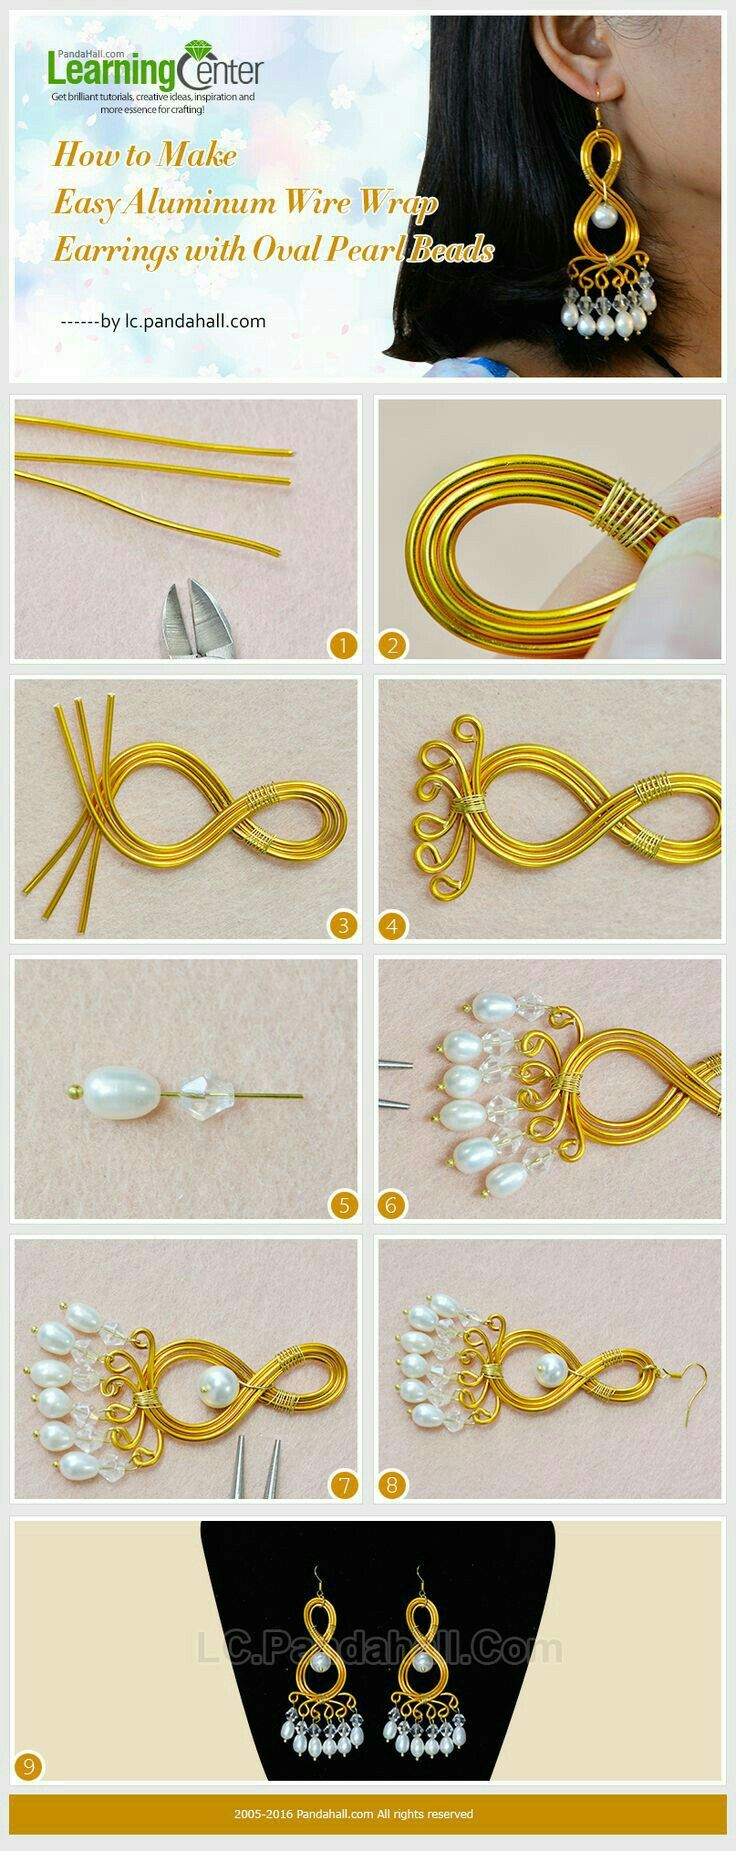 Pin by Shannon Marshall-Tilton on Wire Wrapping | Pinterest | Wire ...